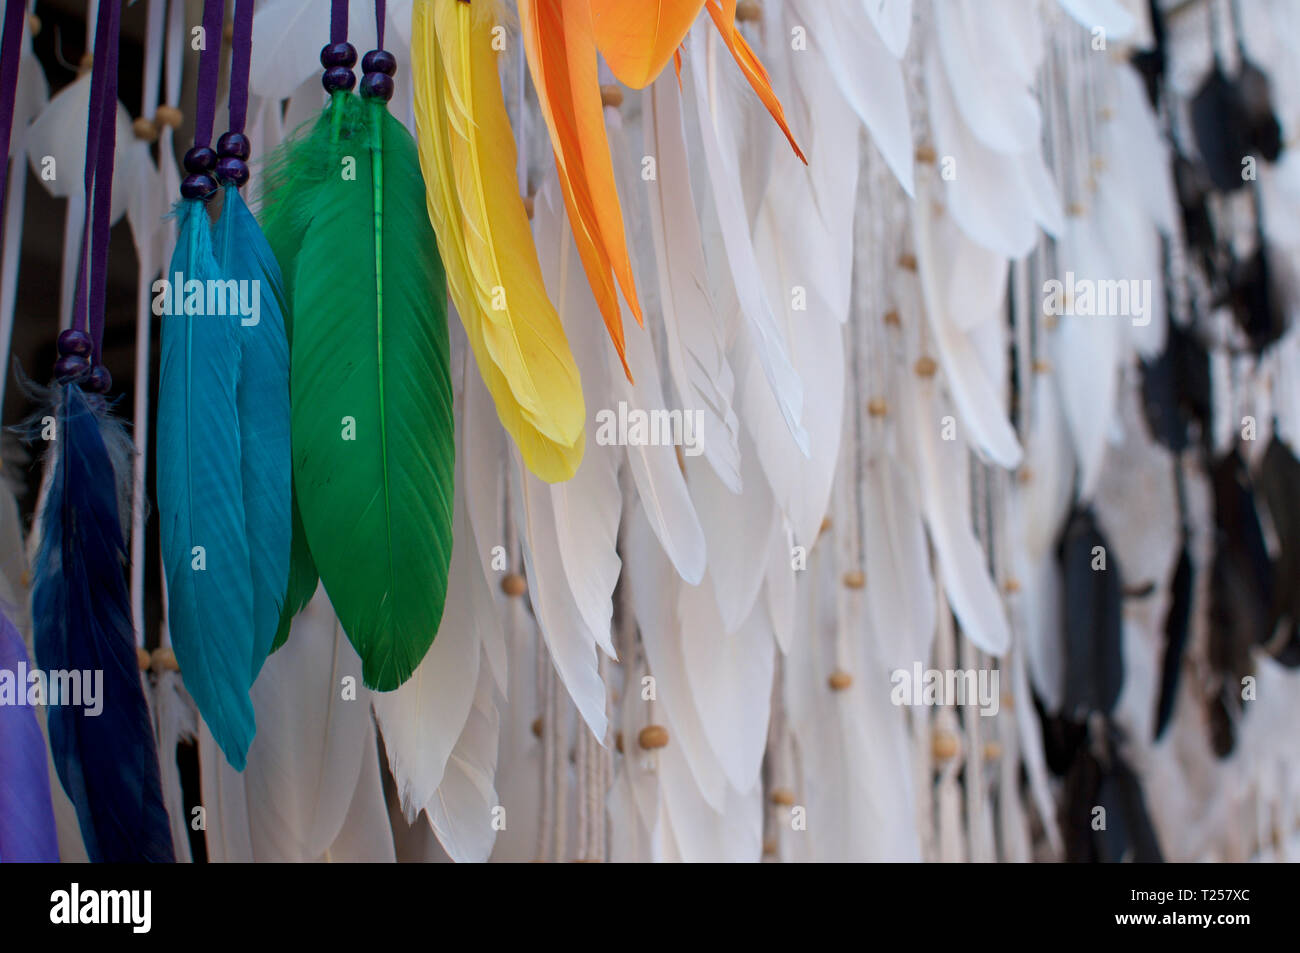 Beautiful close of colored and white feathers of a dreamcatcher hanging at the Ubud Art Market in Bali, Indonesia - Stock Image